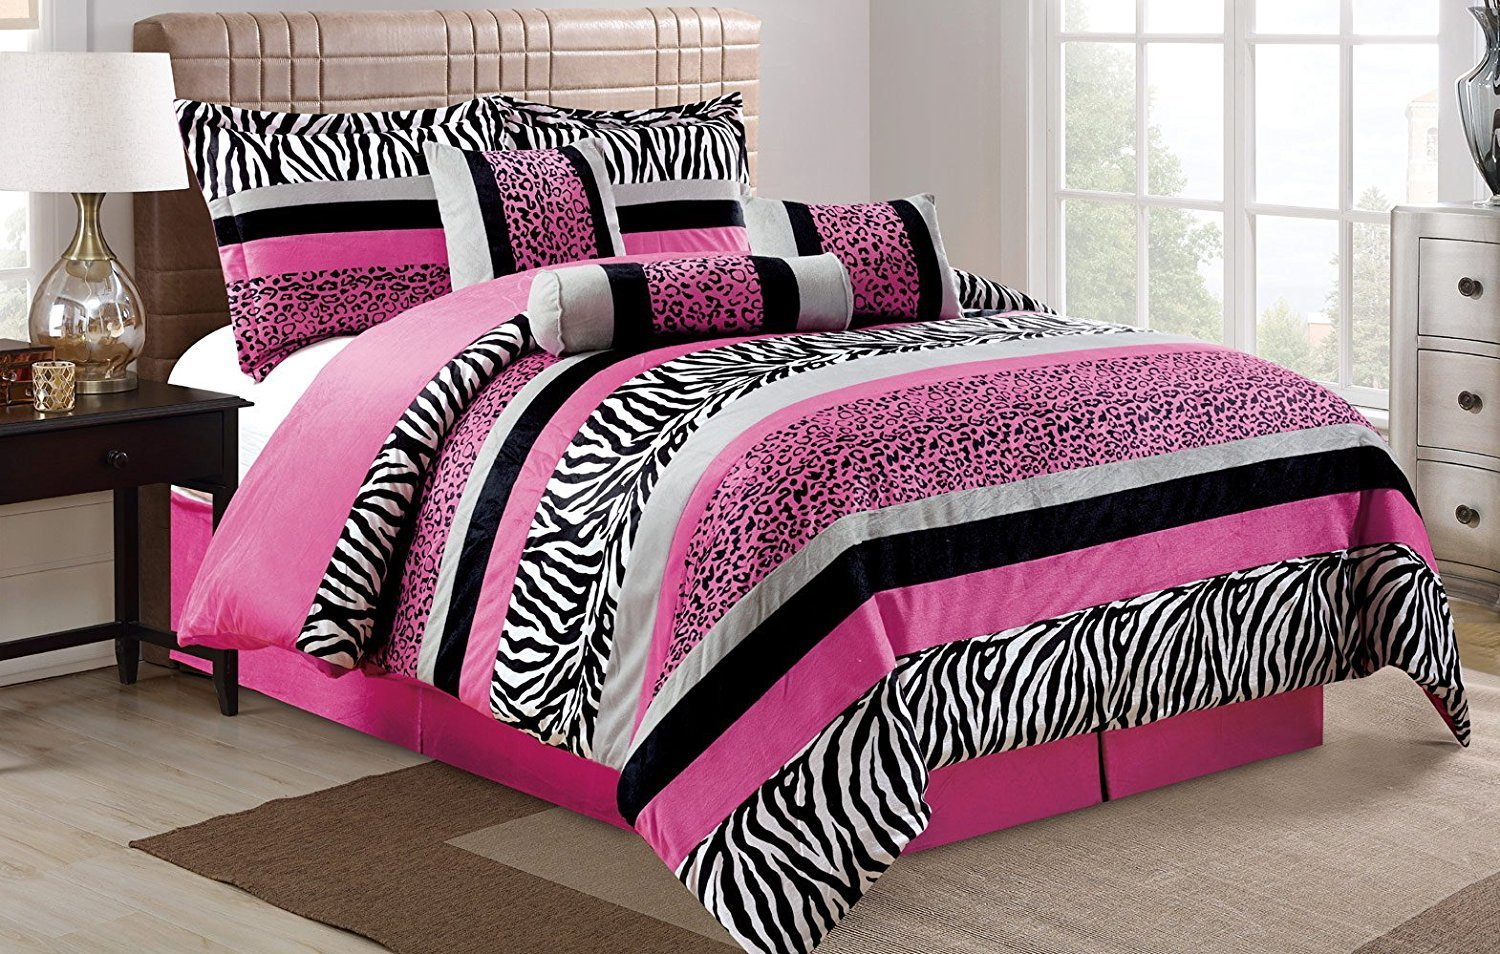 Pink And Black Zebra Room Ideas